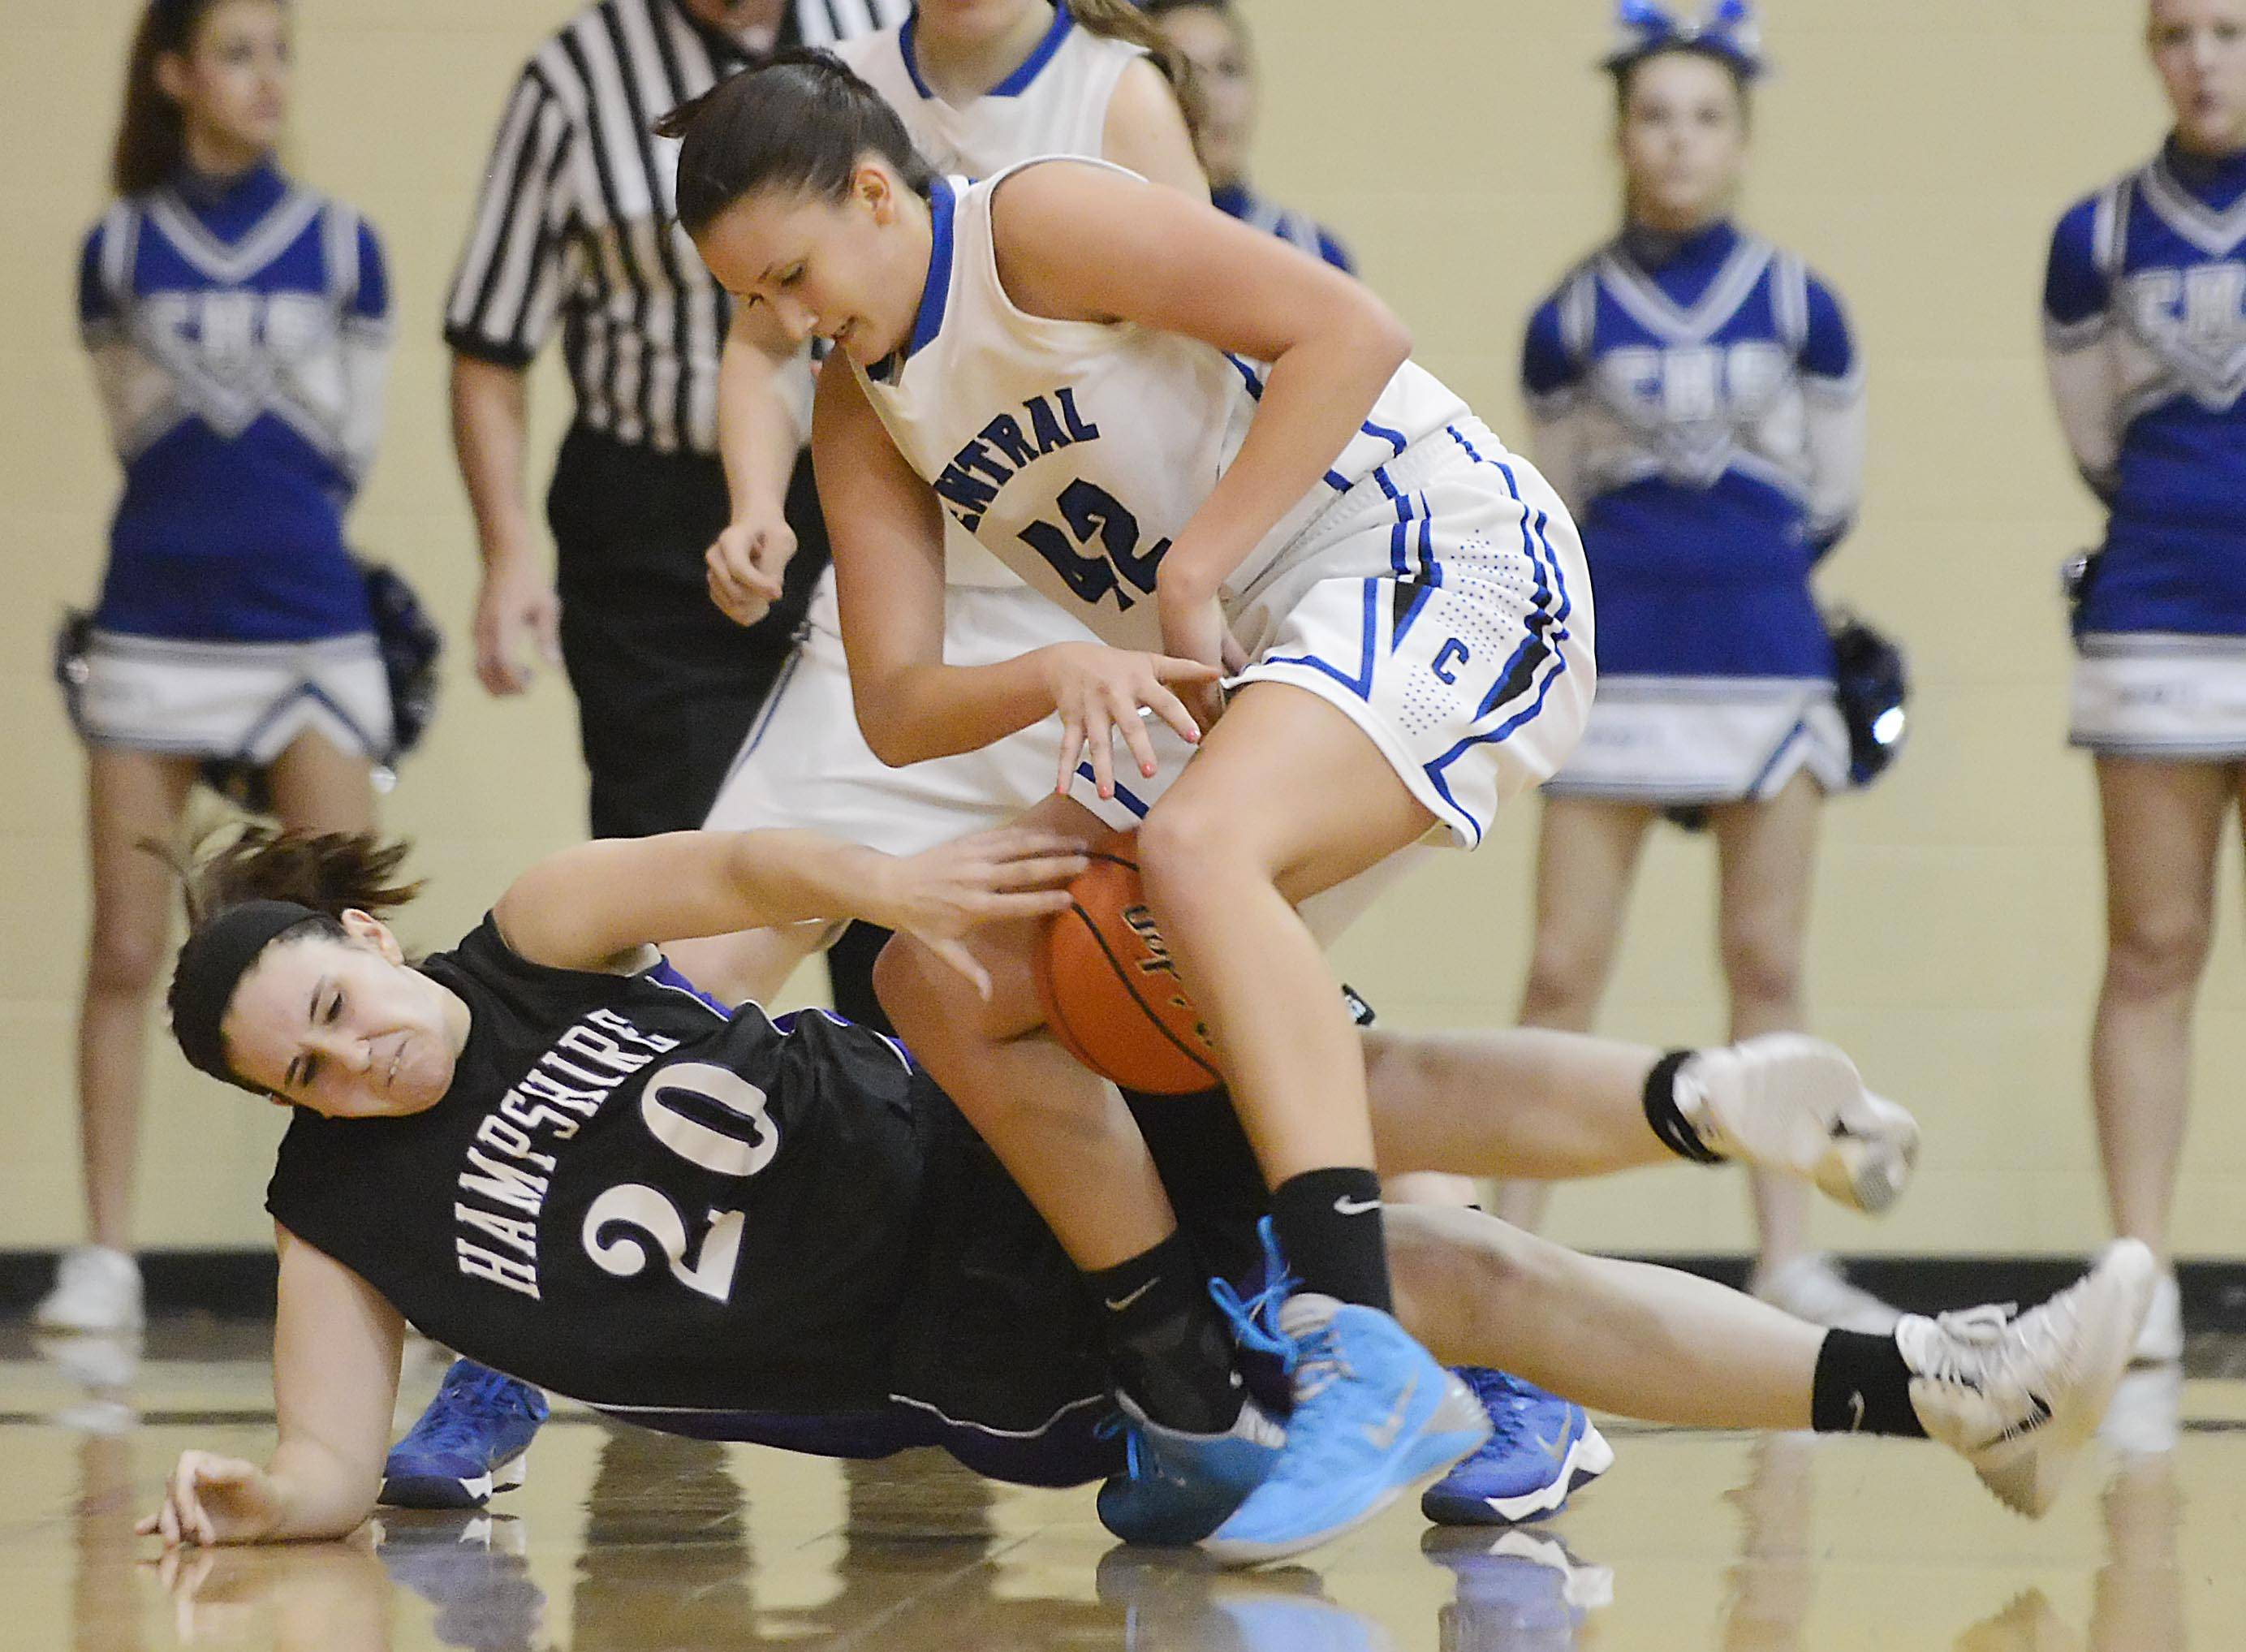 Burlington Central's Alison Colby loses the ball as Hampshire's Peyton DeChant falls while defending.